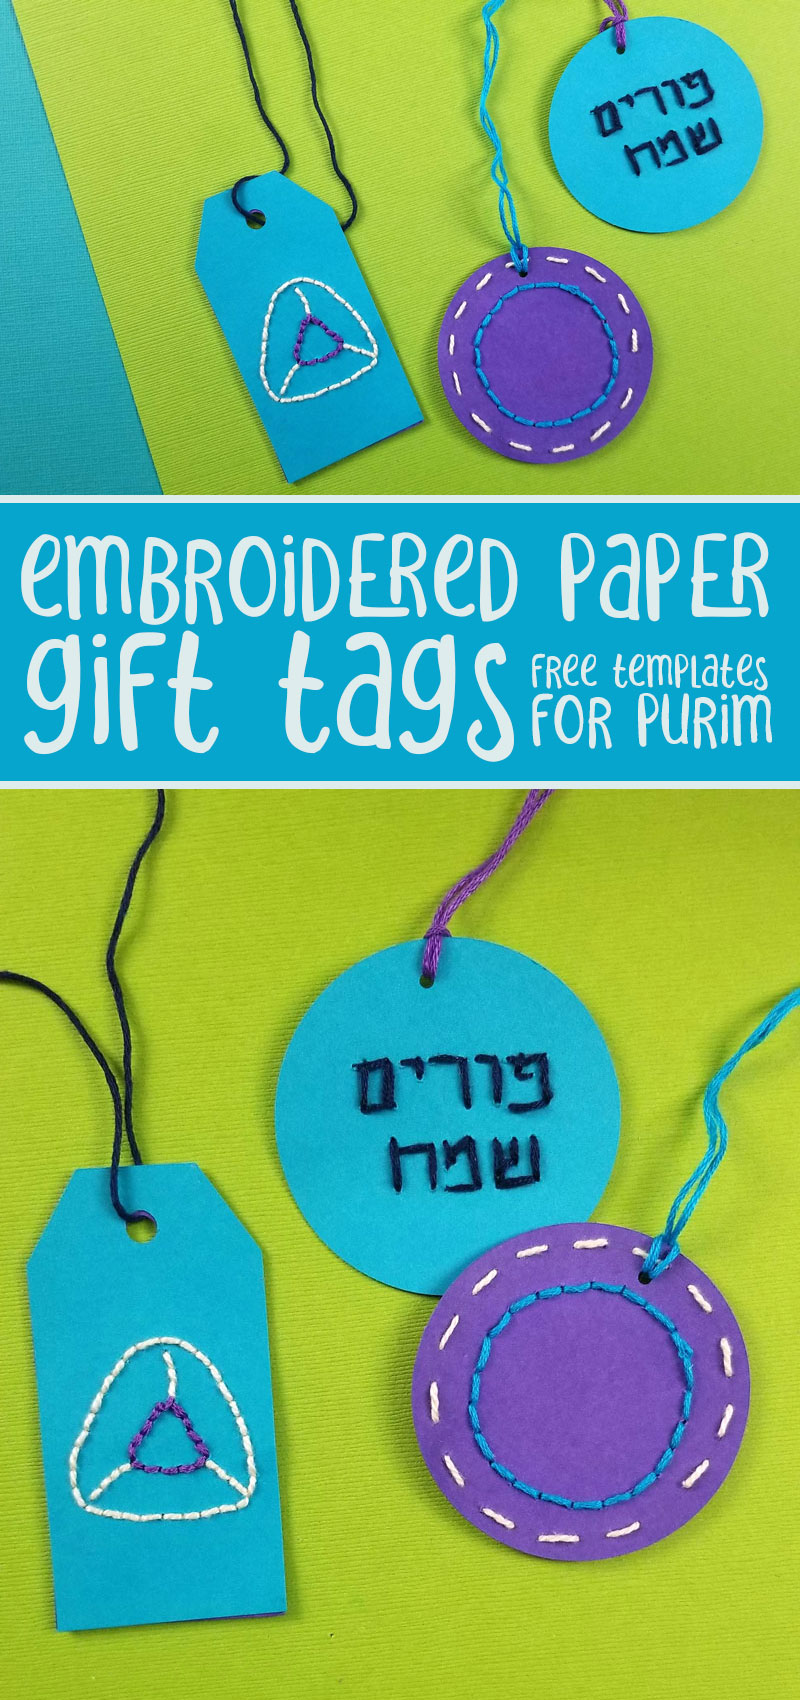 Purim gift tags that are made from stitched paper are a fun Purim craft for kids (if pre-punched), teens, and adults. Learn how to sew paper and embroider cool designs on cardstock gift tags.